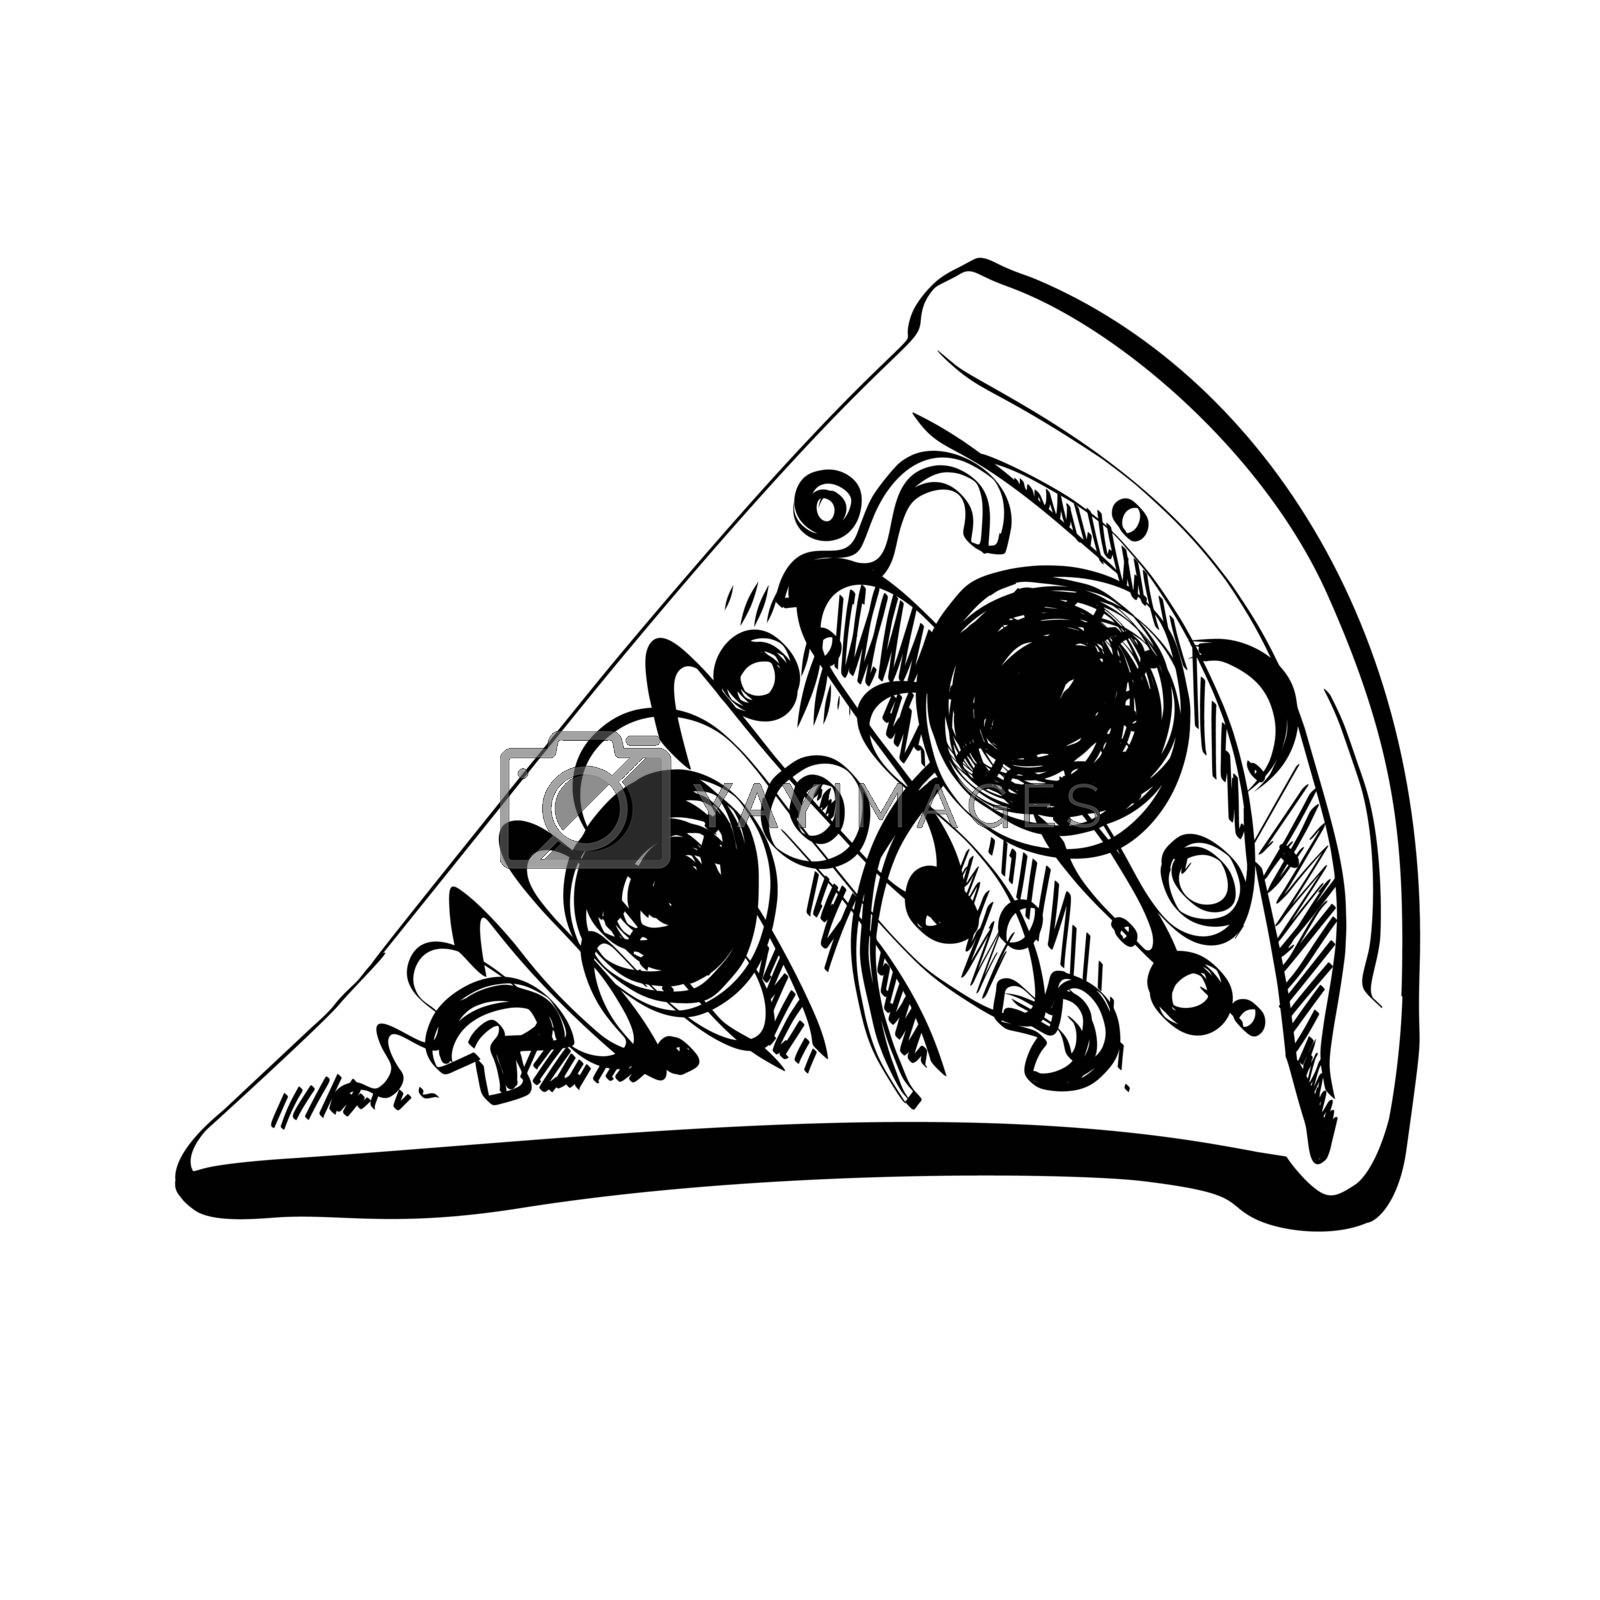 Hand Drawn Sketch of Slice Pizza Pepperoni. Abstract Vintage Illustration for Poster, Menu, Box